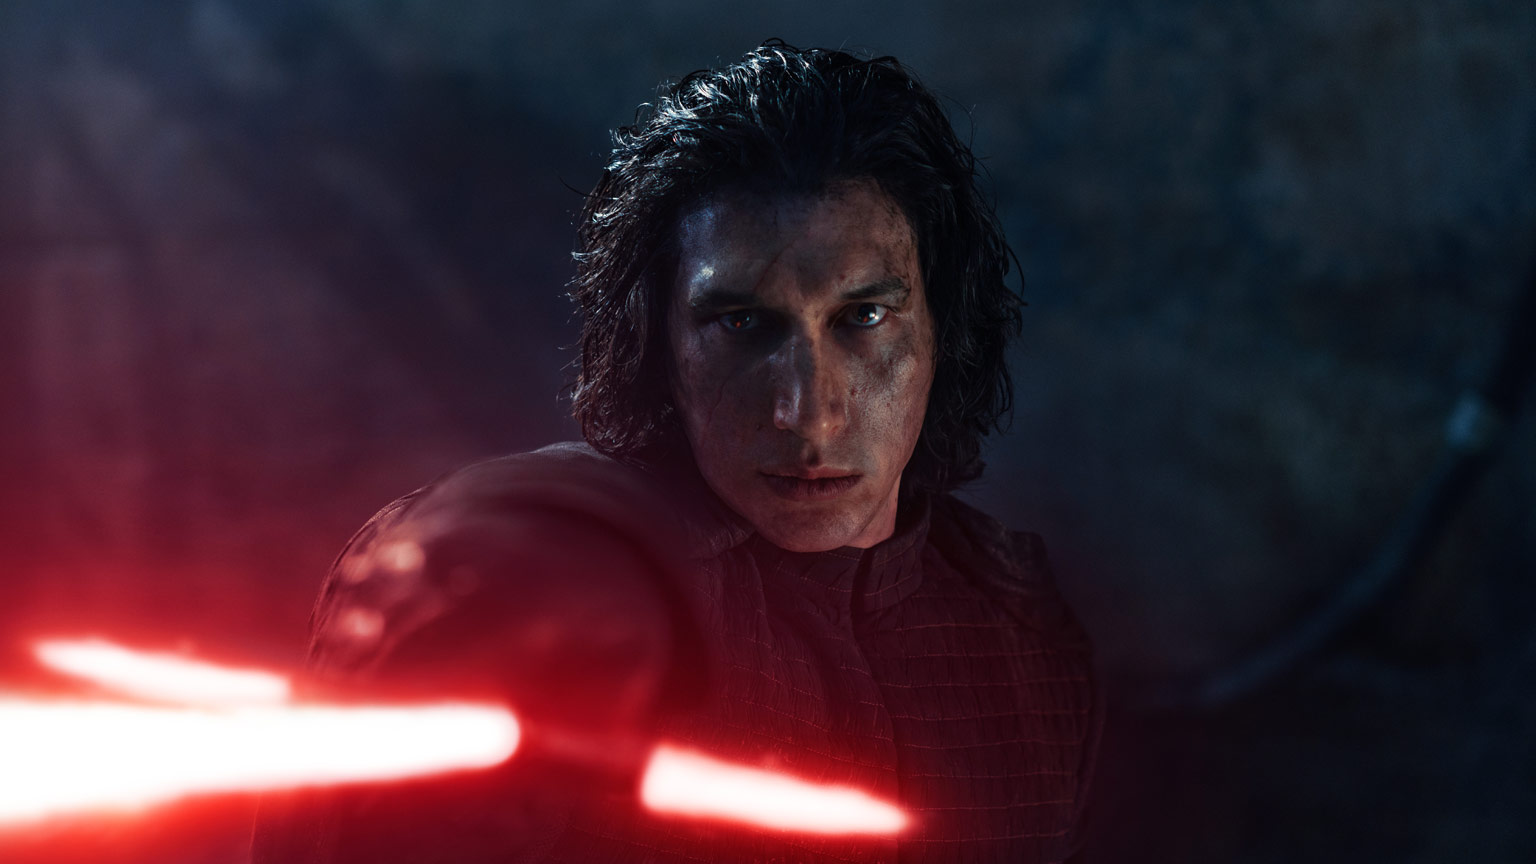 Kylo Ren on Exegol in Star Wars: The Rise of Skywalker.